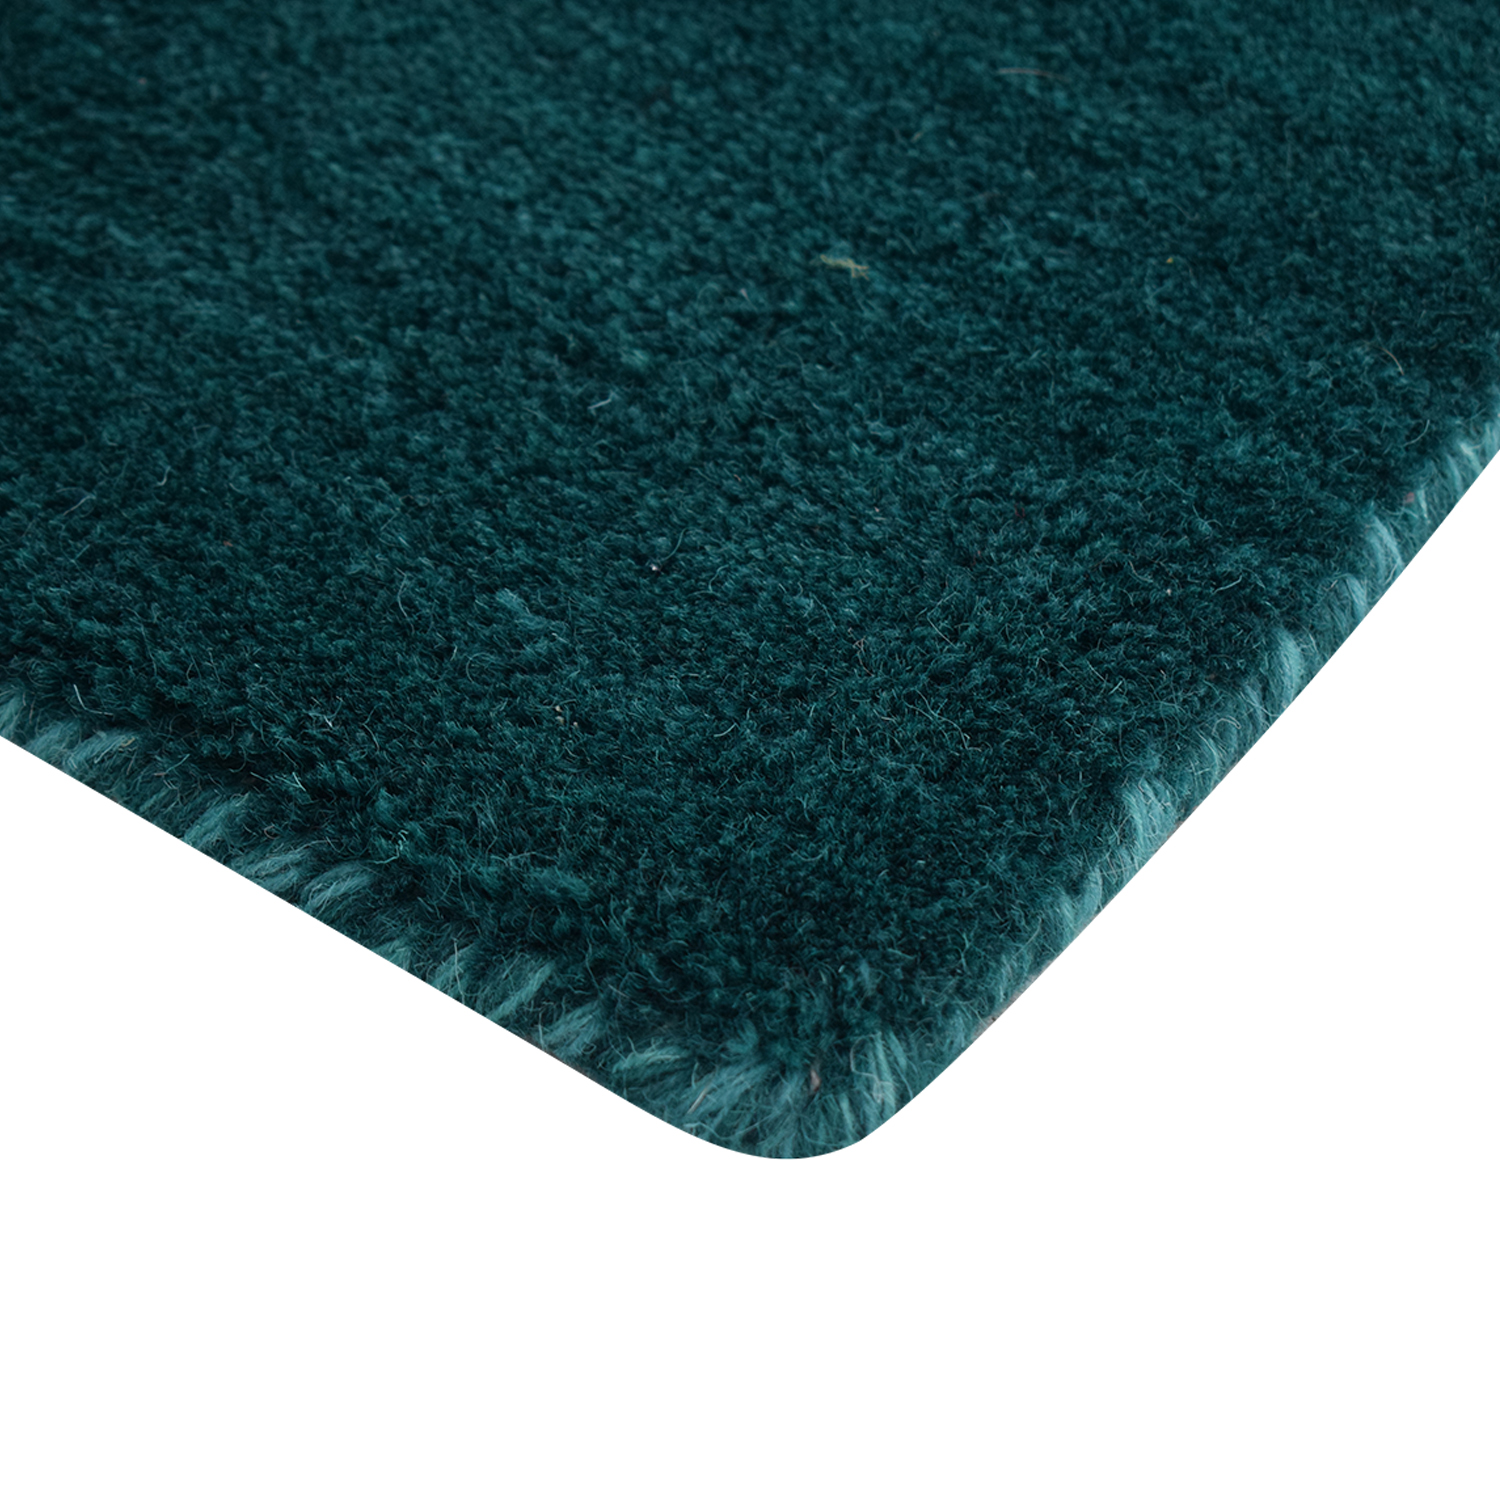 buy CB2 Ombre Teal Rug CB2